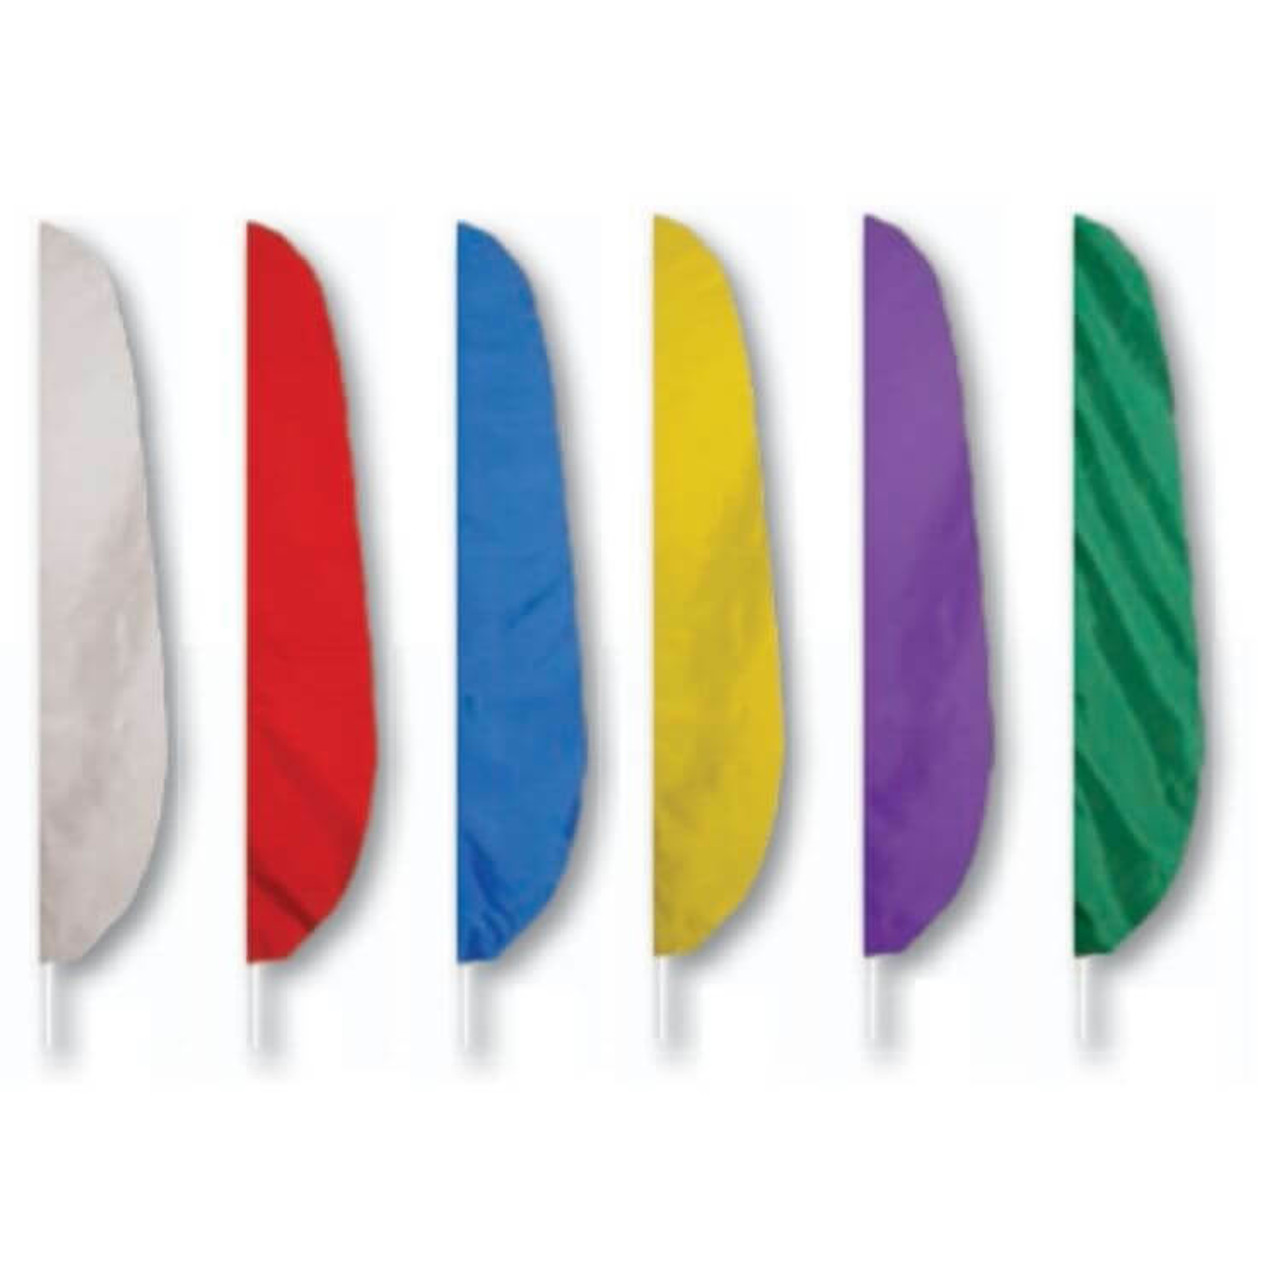 Feather flags, 12' tall, available in white, red, blue, yellow, purple, and green. These flags are shown flying on flagpoles with a white background.